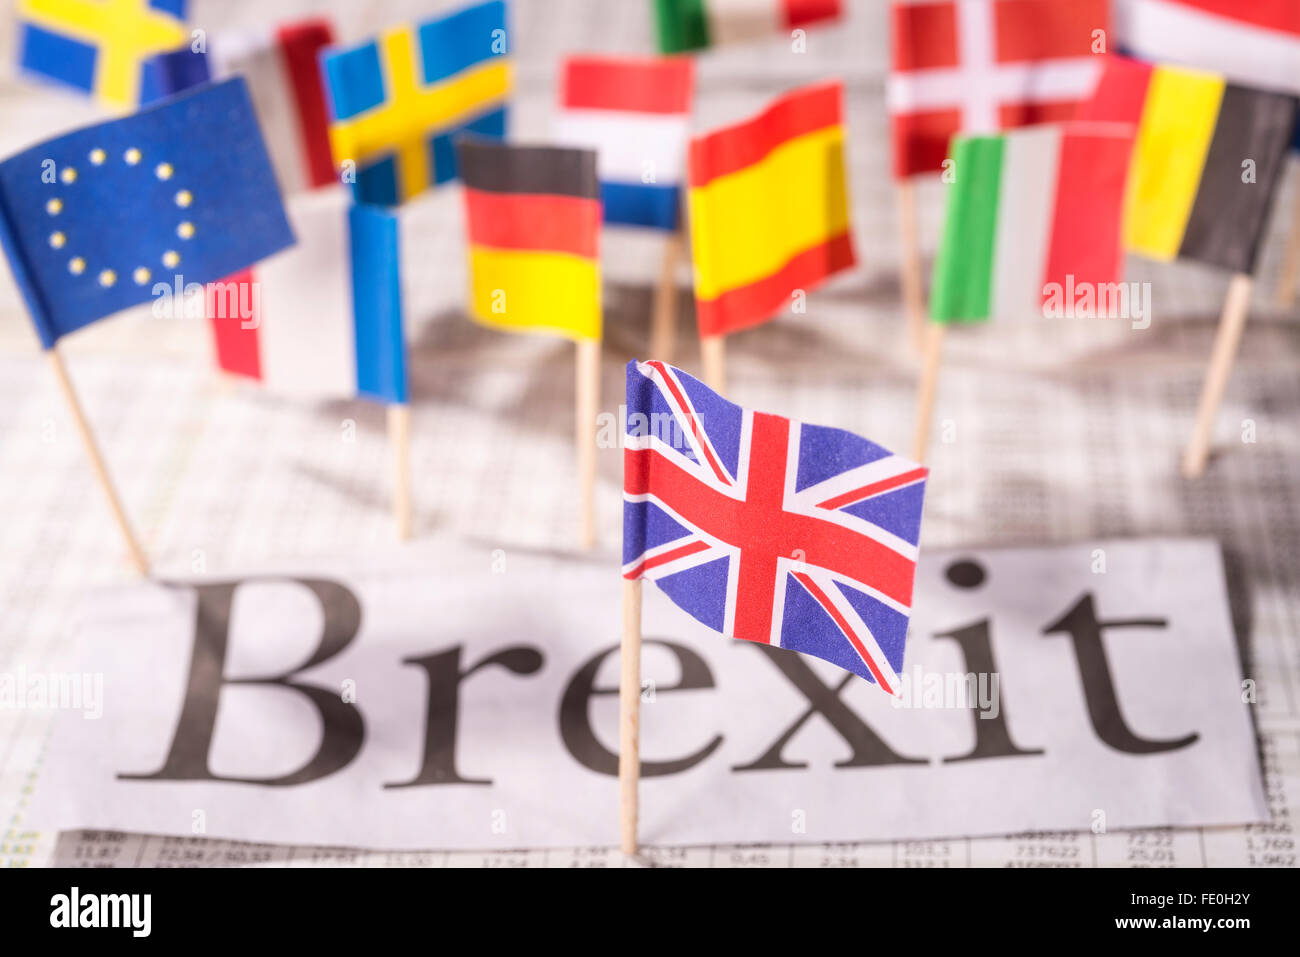 The exit of Britain from the European Union, the 'Brexit' - Stock Image